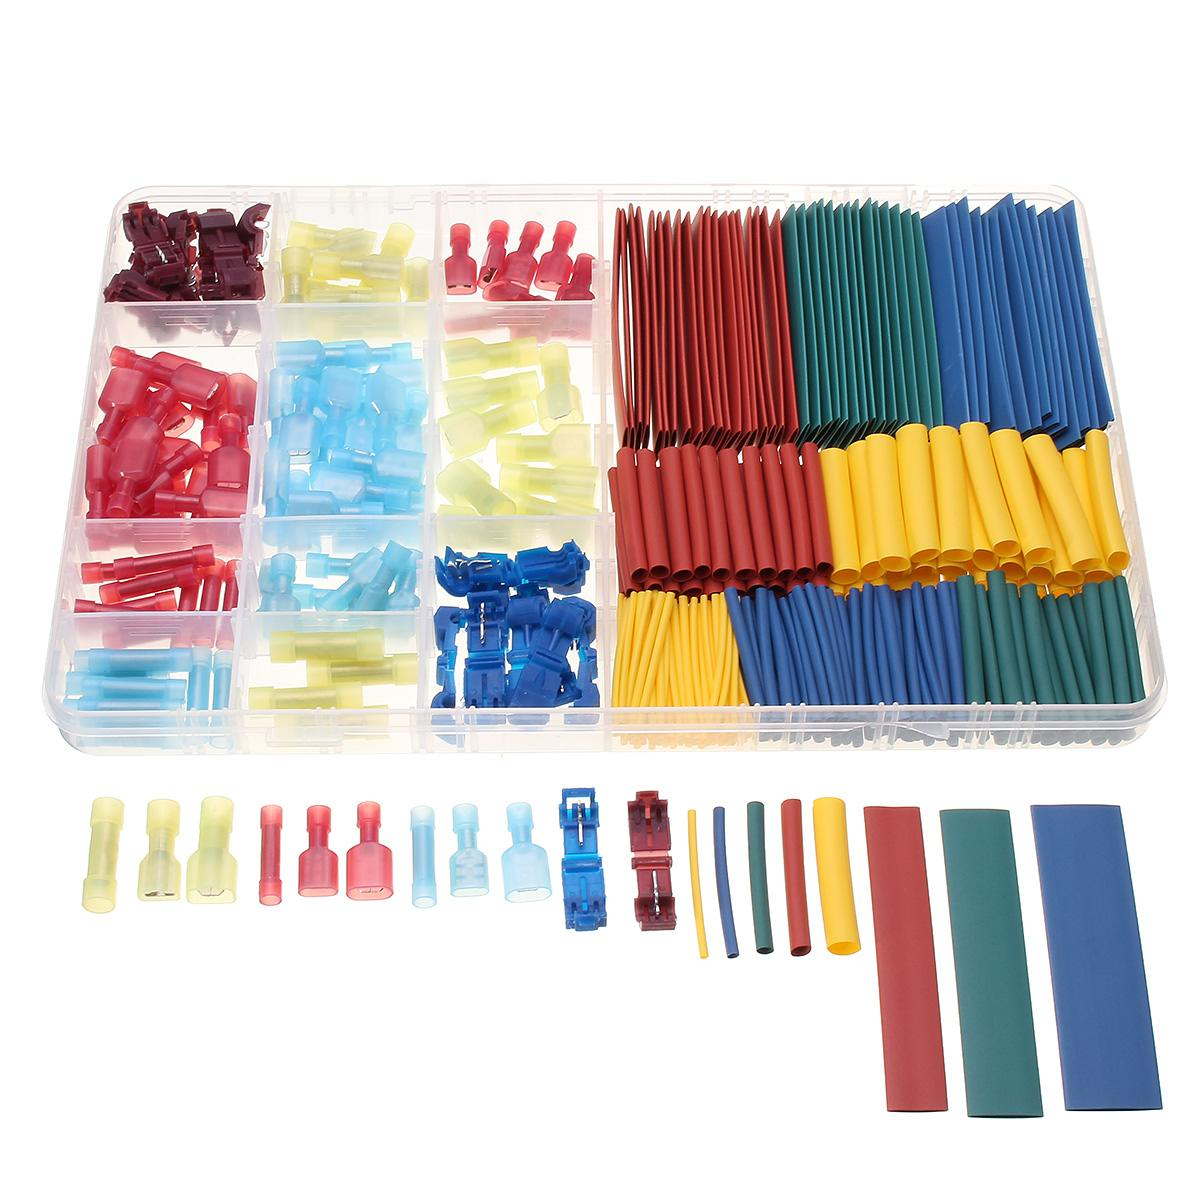 385pcs Heat Shrink Tube Sleeving Kit Set Car Wire Electrical Terminals Spade Male Female Butt Splice Lock Crimp Connector385pcs Heat Shrink Tube Sleeving Kit Set Car Wire Electrical Terminals Spade Male Female Butt Splice Lock Crimp Connector